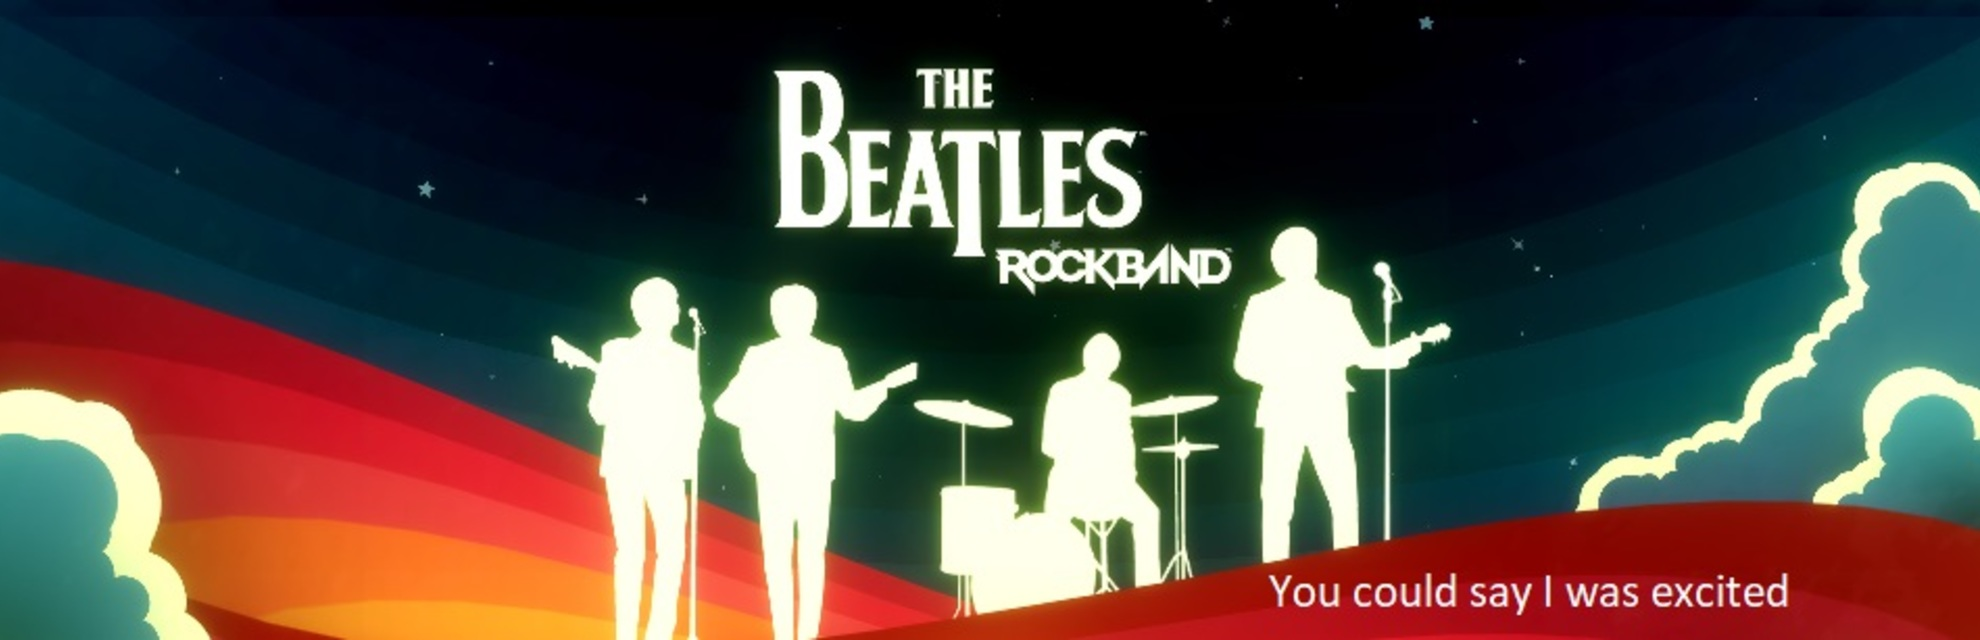 beatlemaniaxx blog header photo